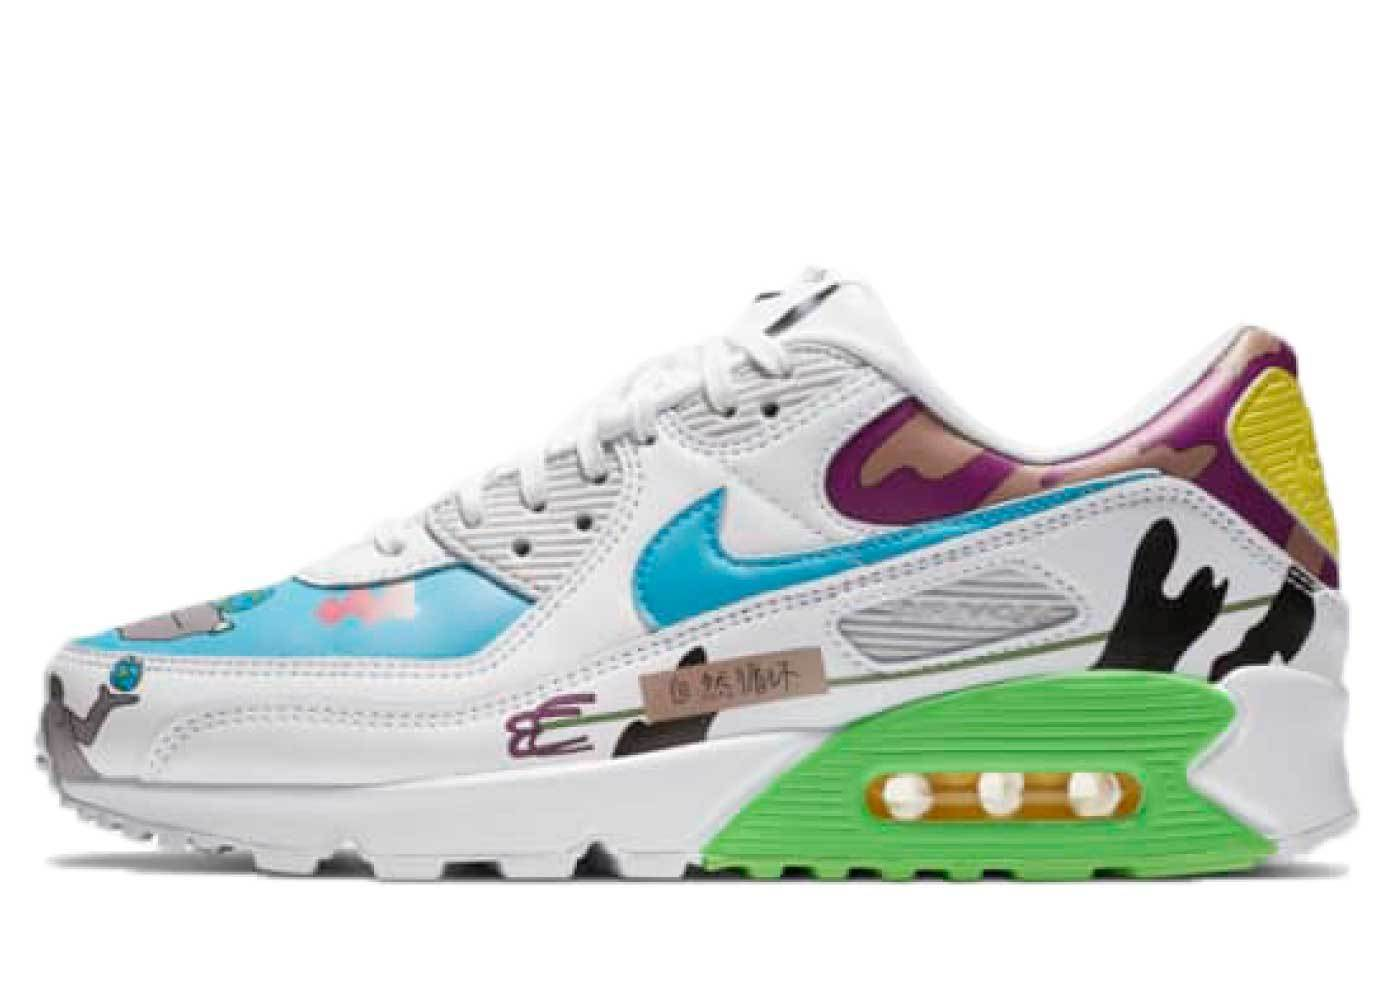 Nike Air Max 90 Flyleather Rouhan Wangの写真